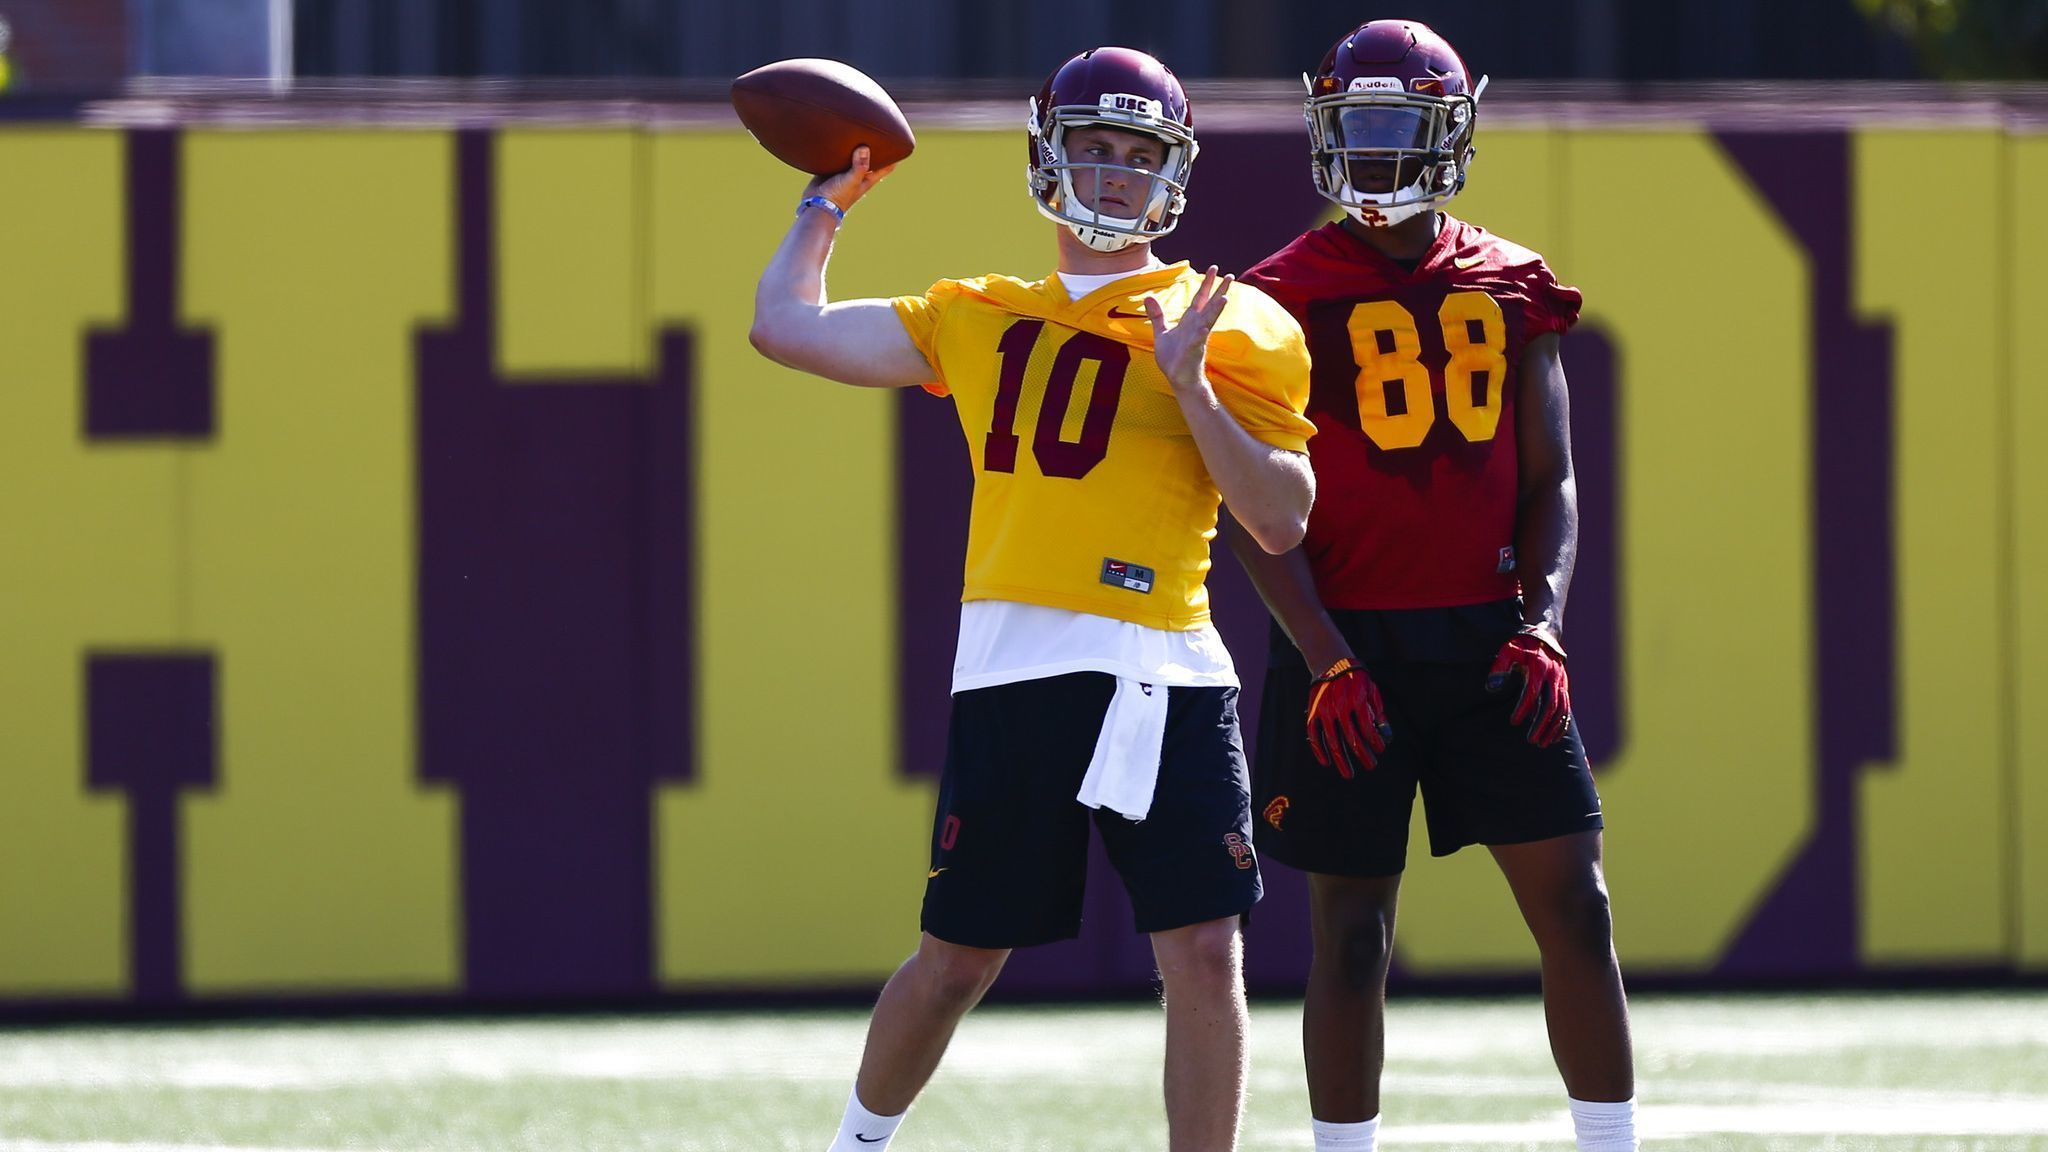 USC coaches want quarterbacks to understand the concept of self preservation